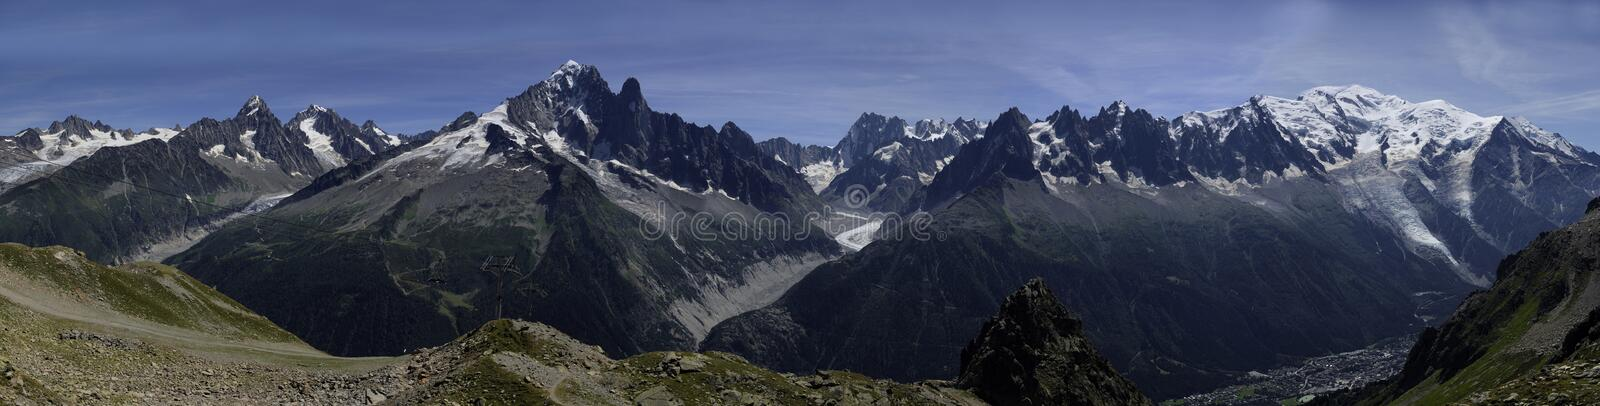 Mont Blanc varia imagens de stock royalty free